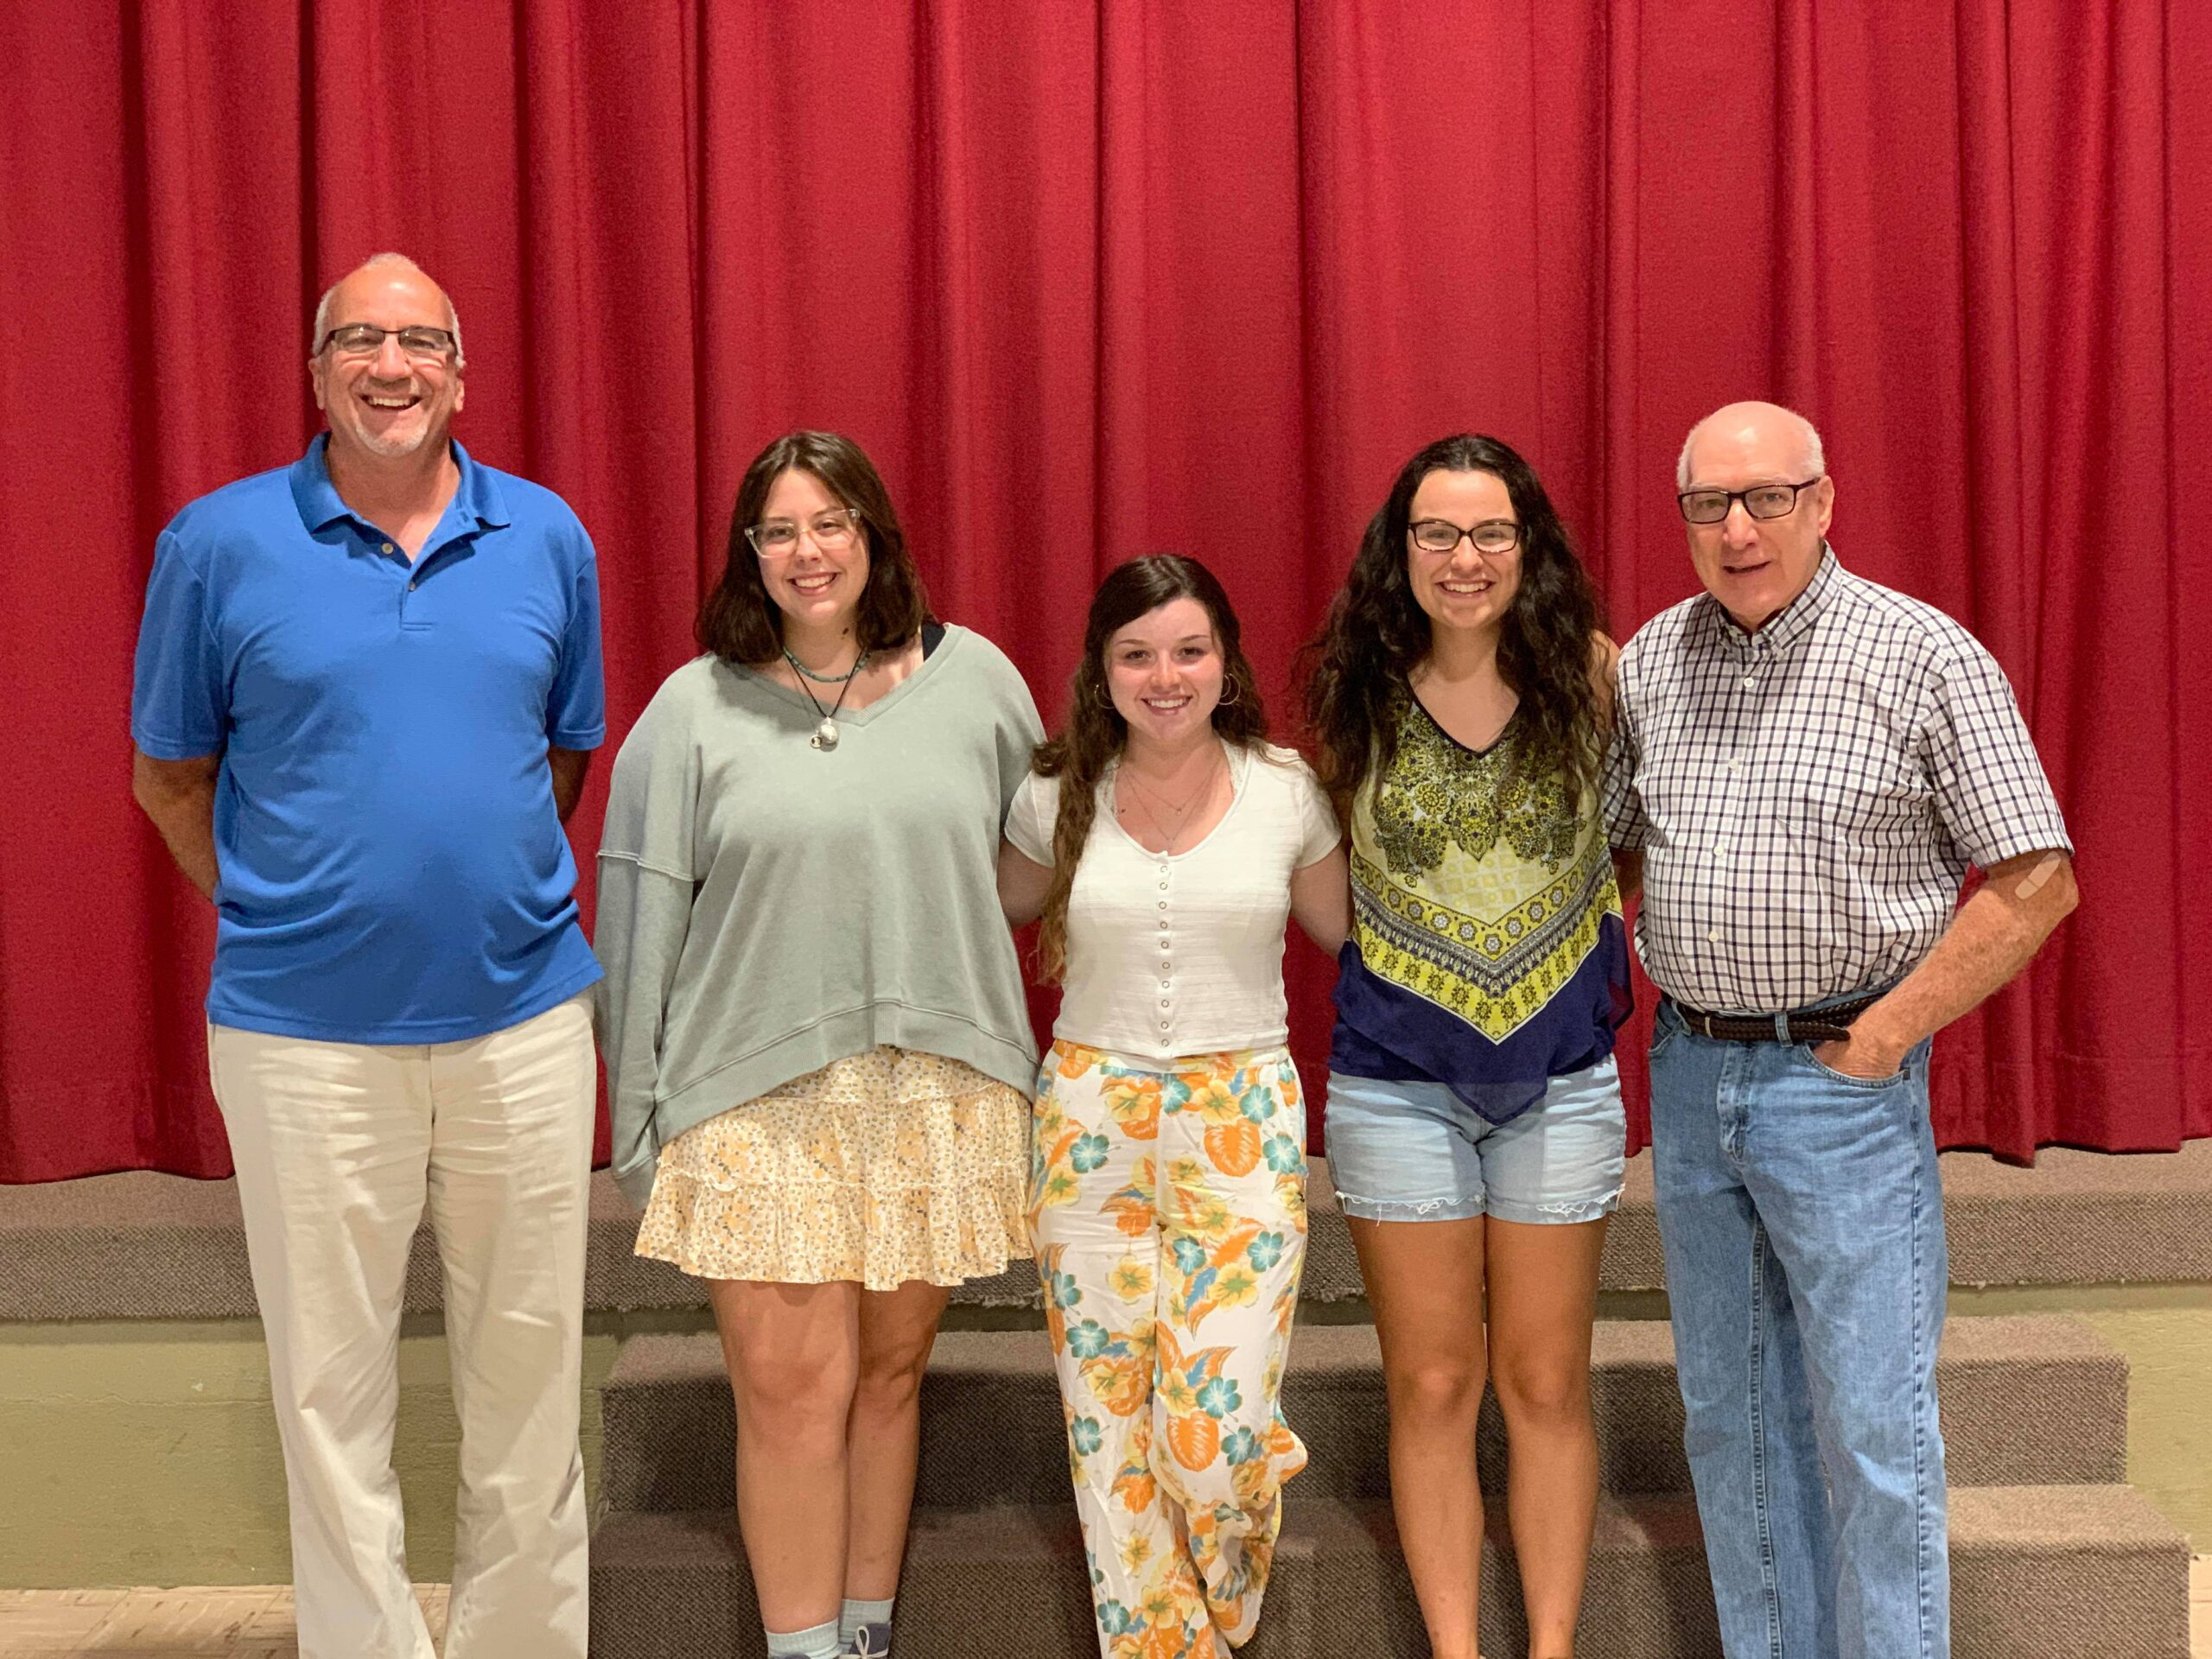 Photo: from left to right: Terry Smallwood, Hannah Smith - attending Elizabethtown College, with a dual major in Criminal Justice and Japanese, Emily Burke - attending McDaniel College, majoring in Psychology, Brenna Fitzgerald - attending Shepherd University, majoring in Criminal Justice, and Bobby Deener.